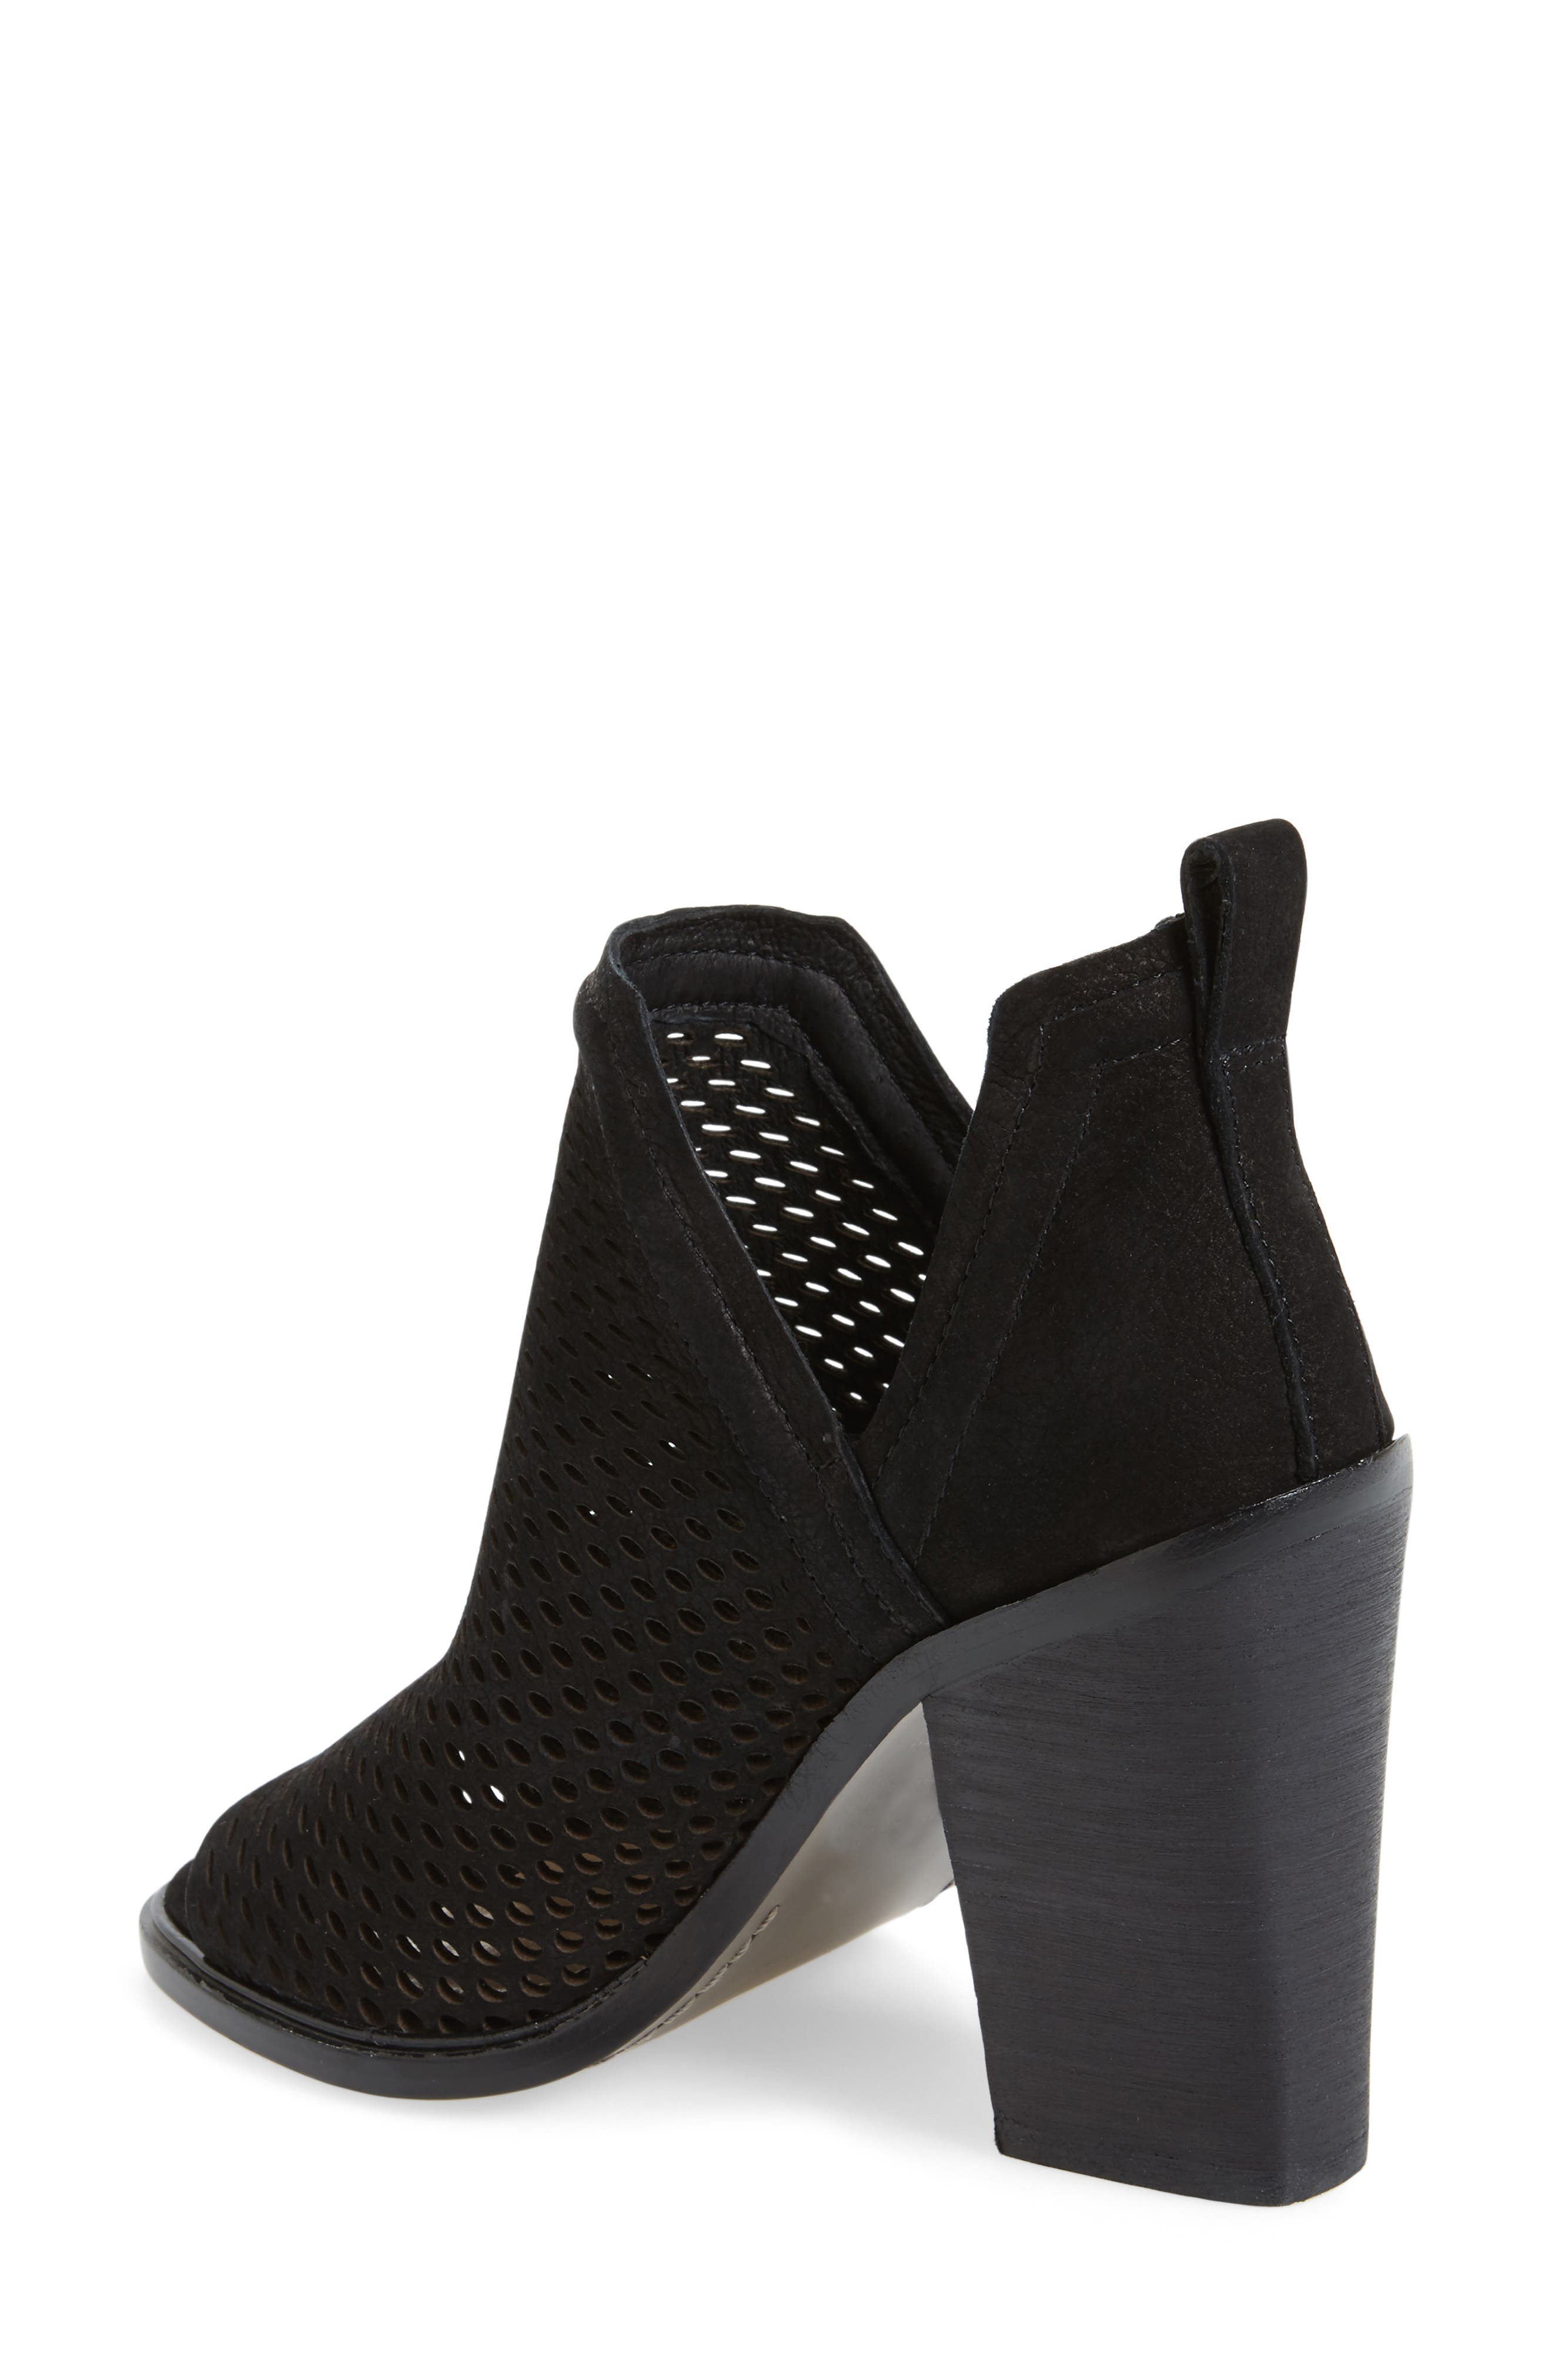 Kensa Peep Toe Bootie,                             Alternate thumbnail 2, color,                             001